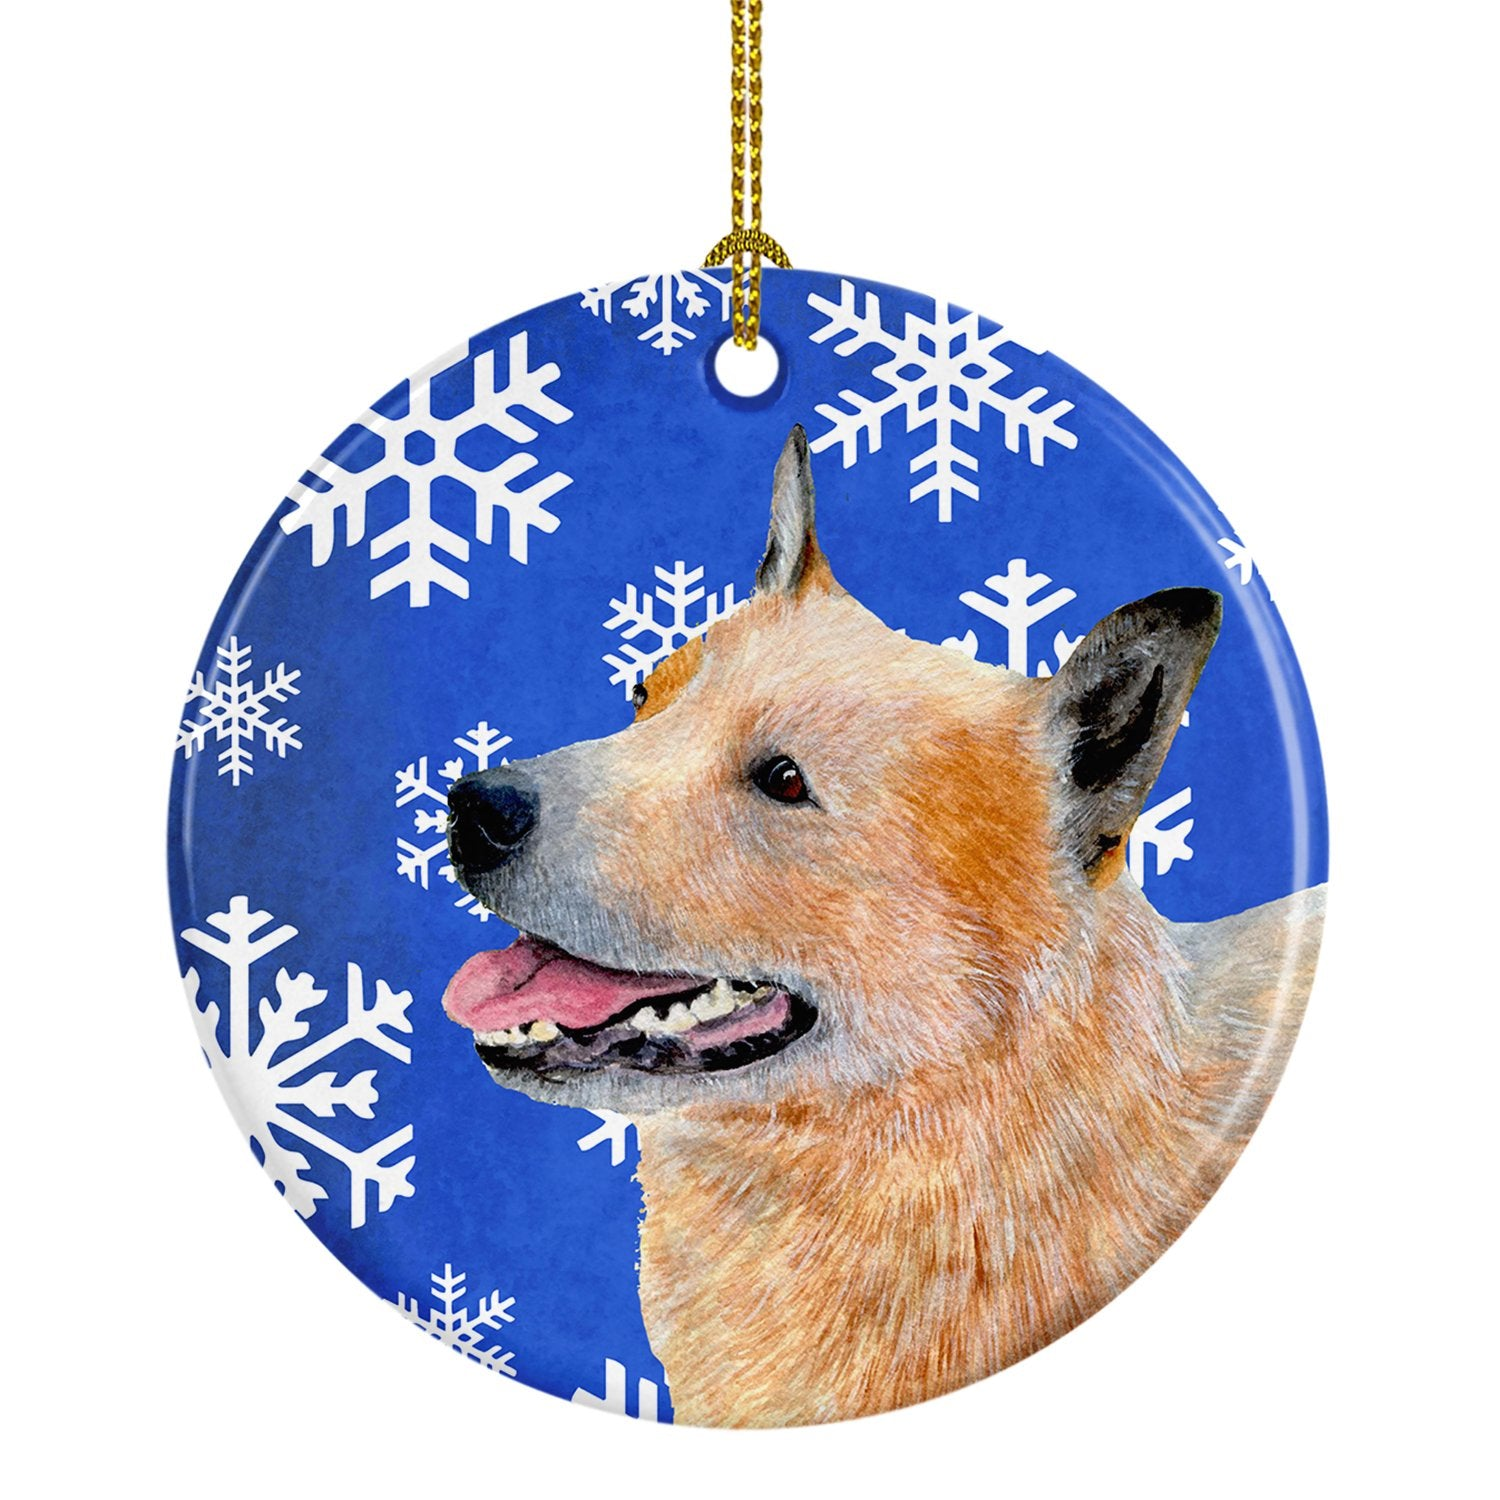 Australian Cattle Dog Winter Snowflake Holiday Ceramic Ornament LH9272 by Caroline's Treasures